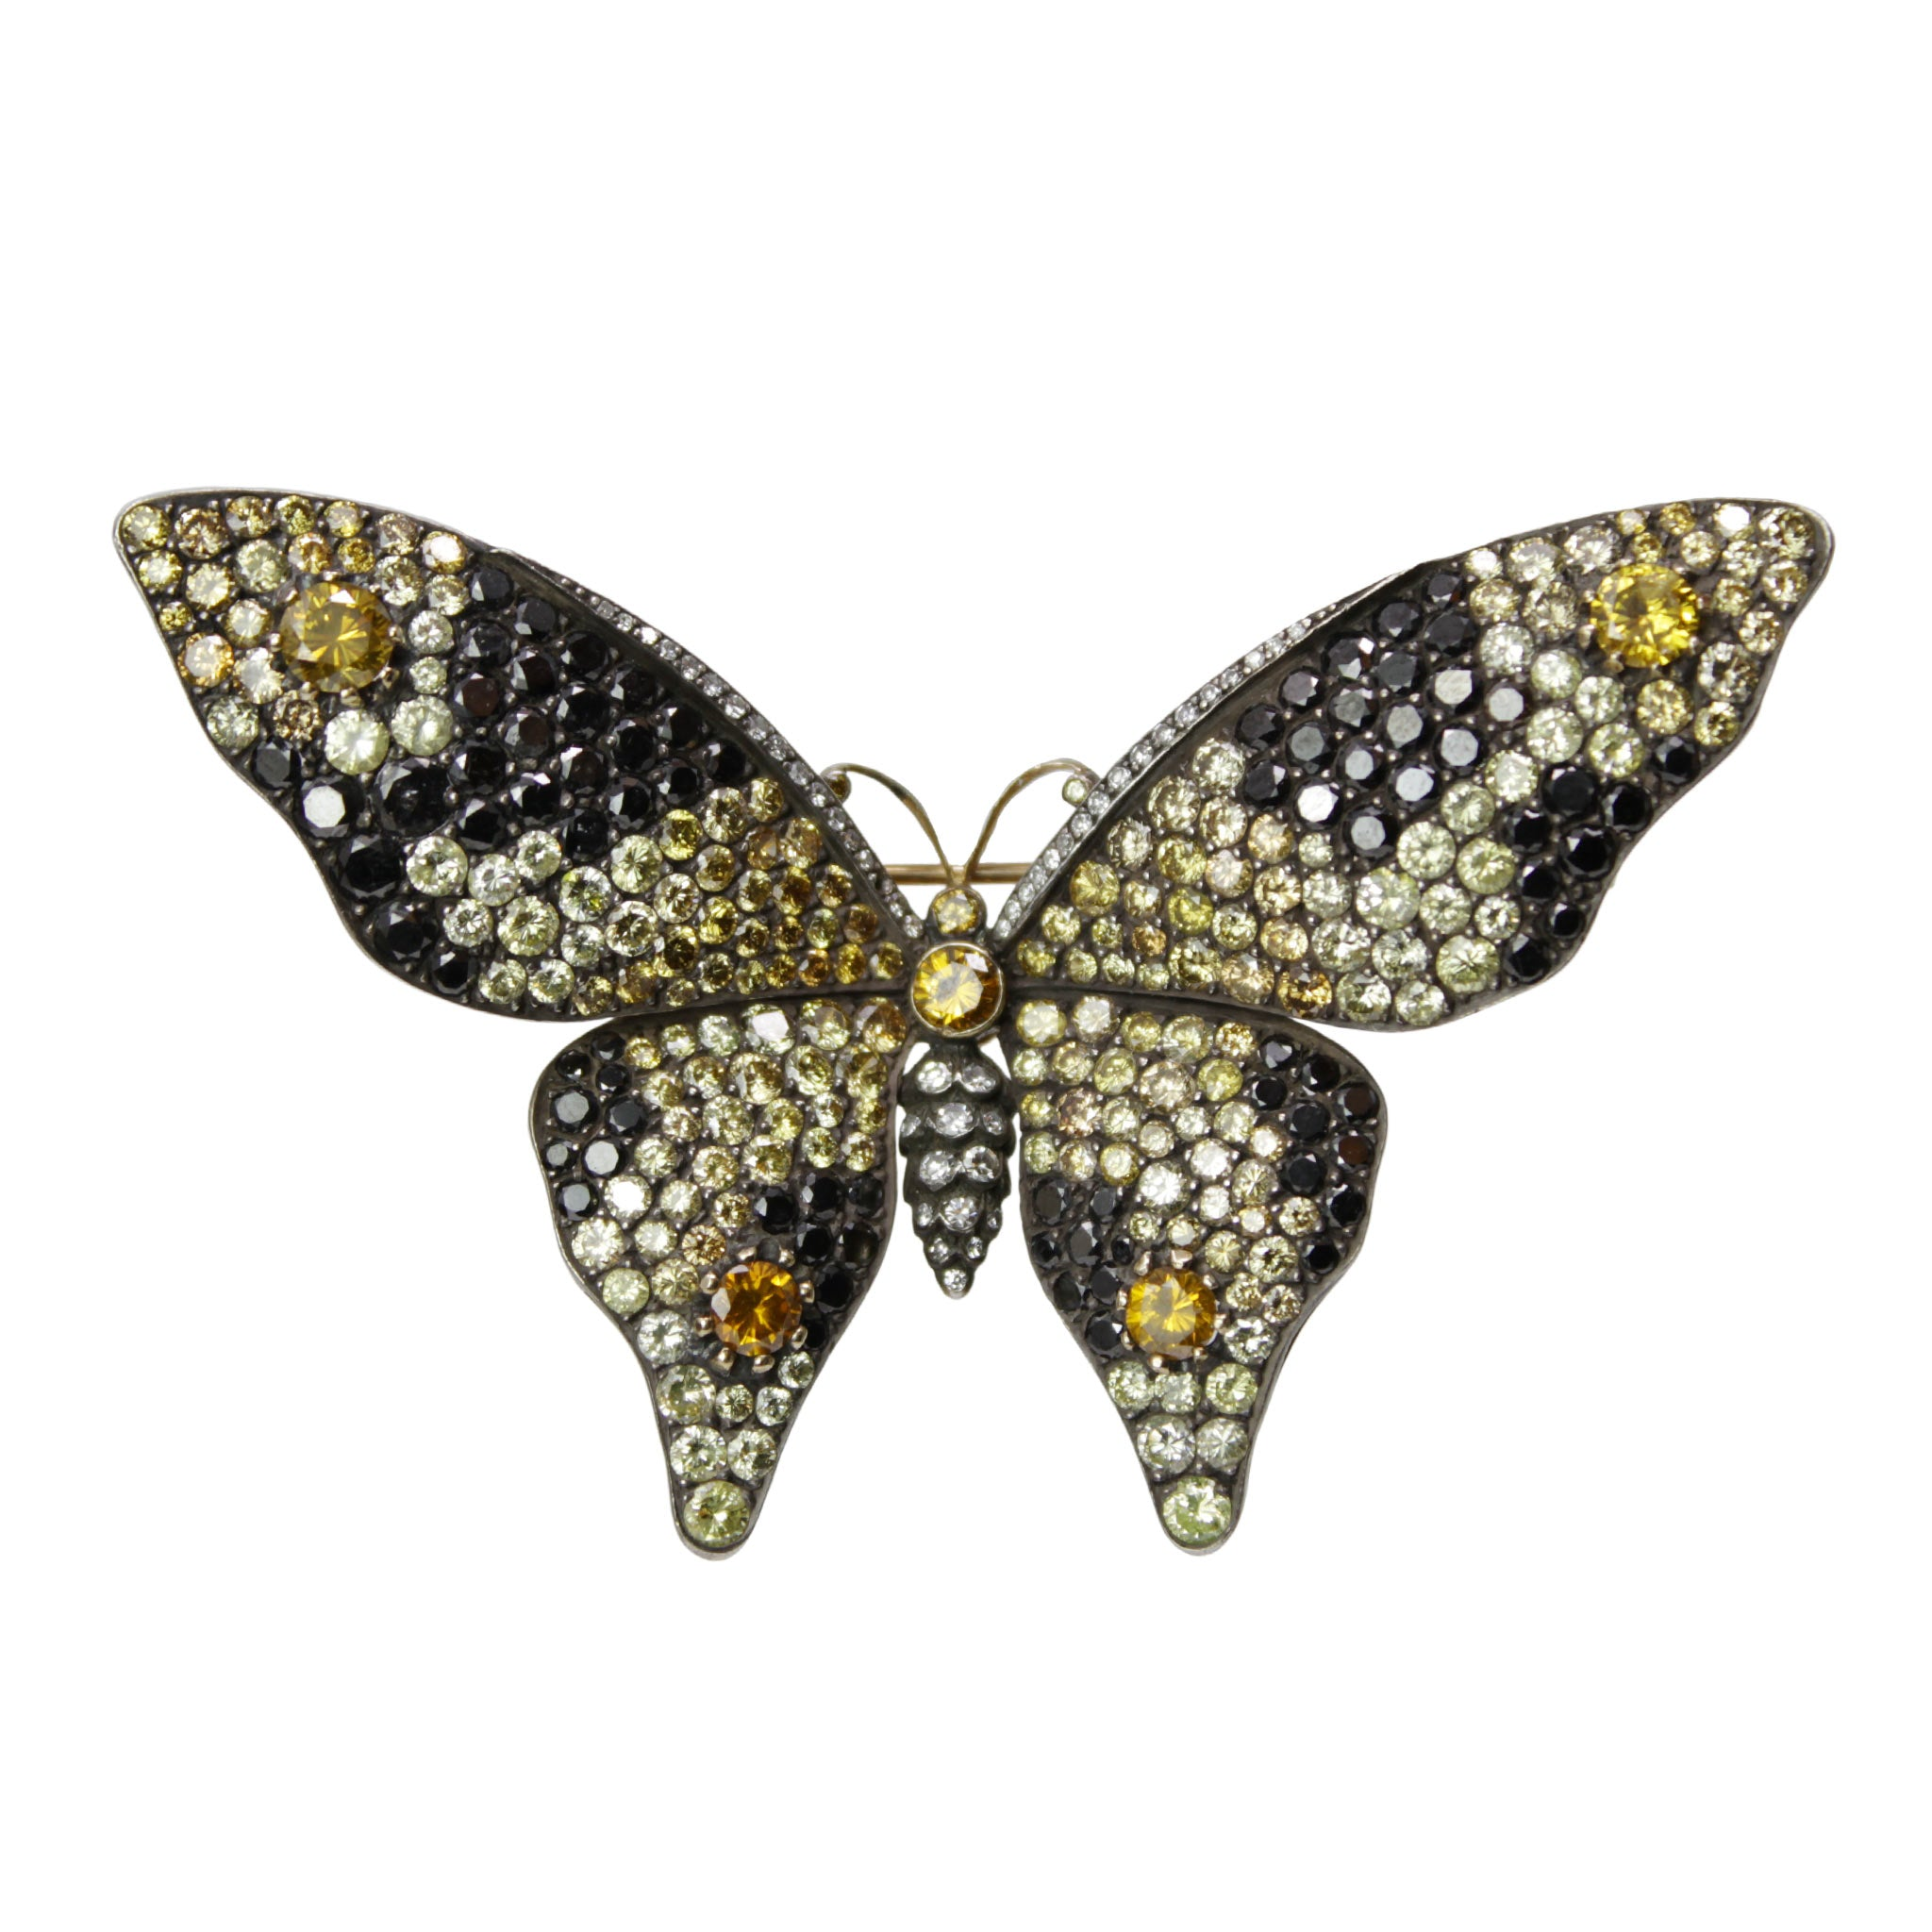 Dazzling Monarch Butterfly Pin - Fancy Yellow and Black Diamond Butterfly Brooch